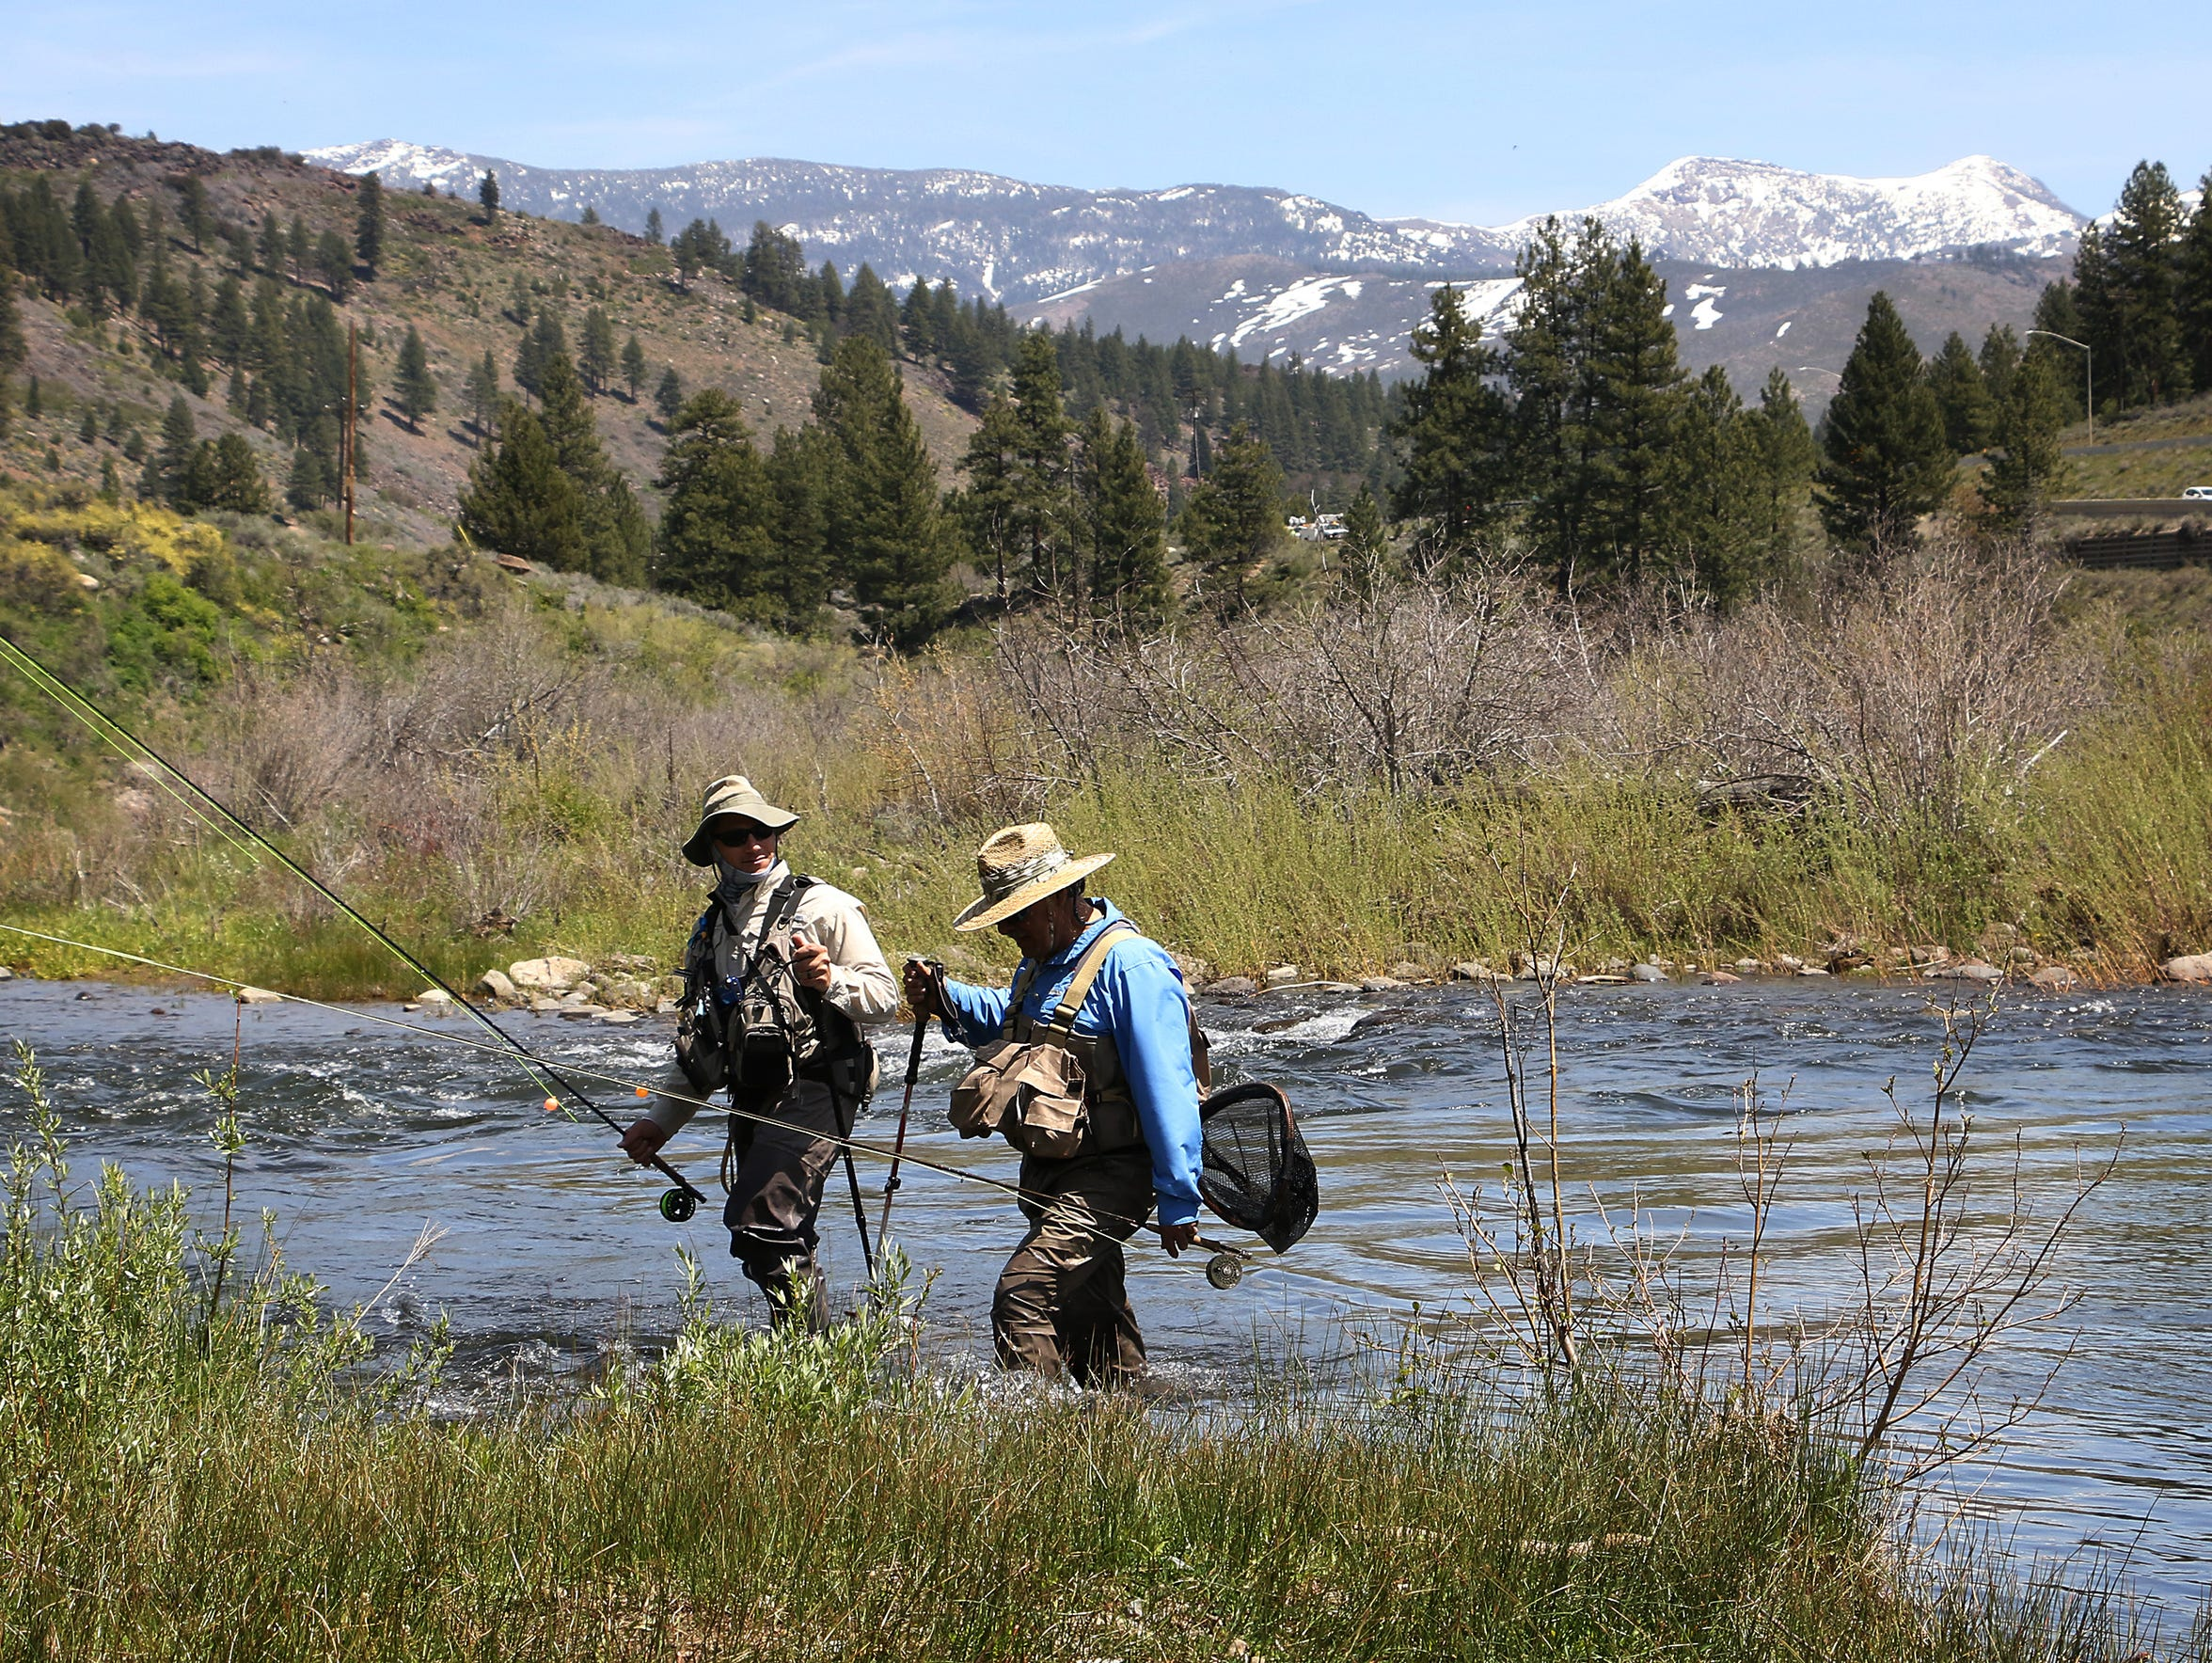 Anglers near the confluence of the Little Truckee and